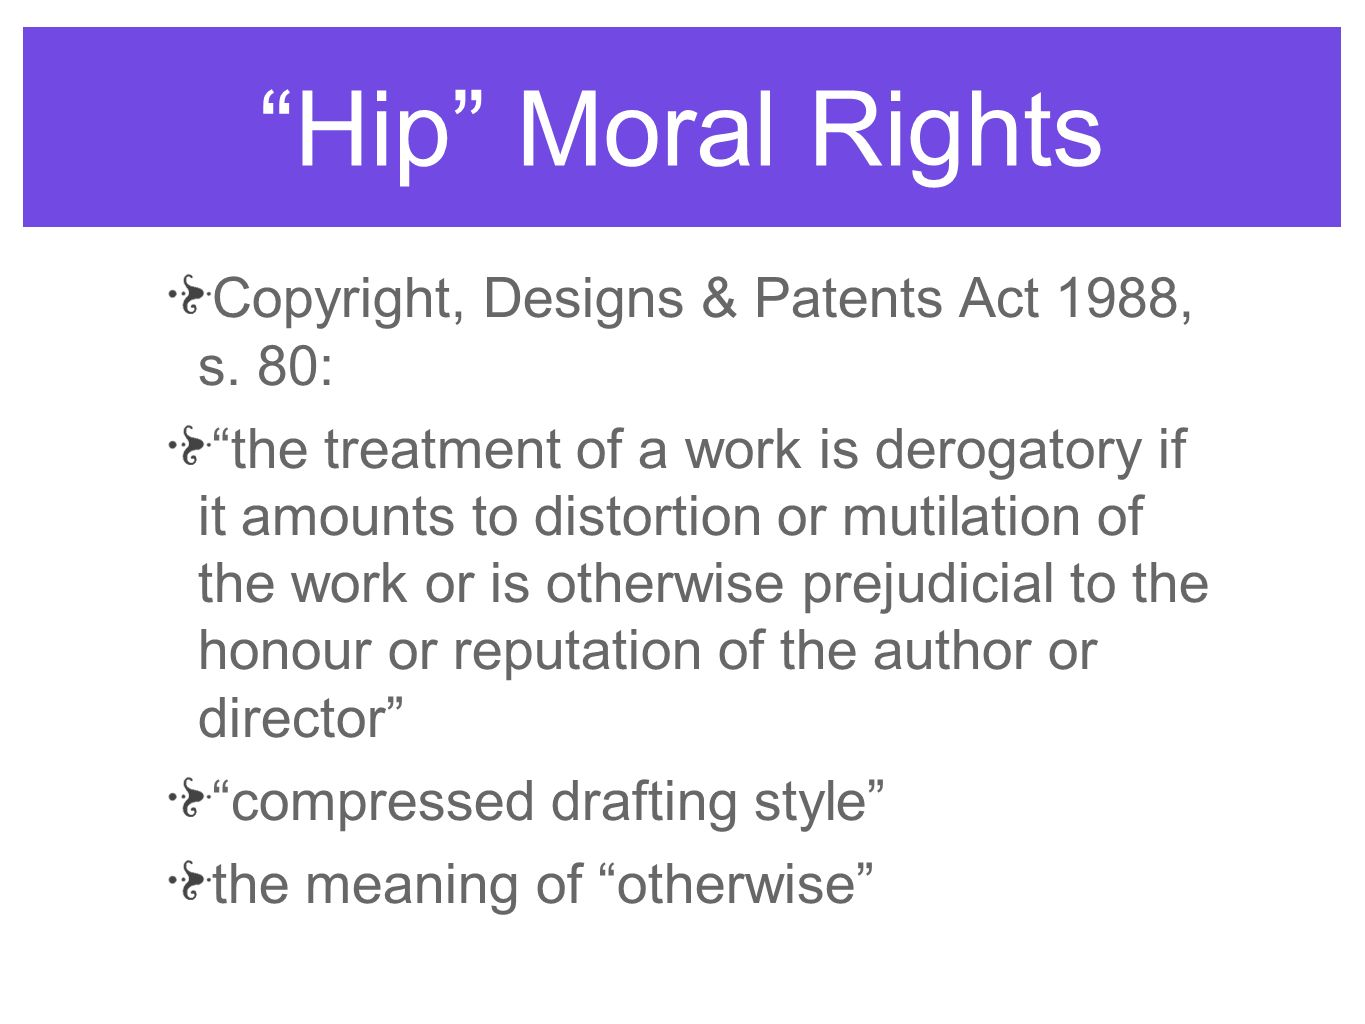 Hip Moral Rights Copyright, Designs & Patents Act 1988, s. 80: the treatment of a work is derogatory if it amounts to distortion or mutilation of the